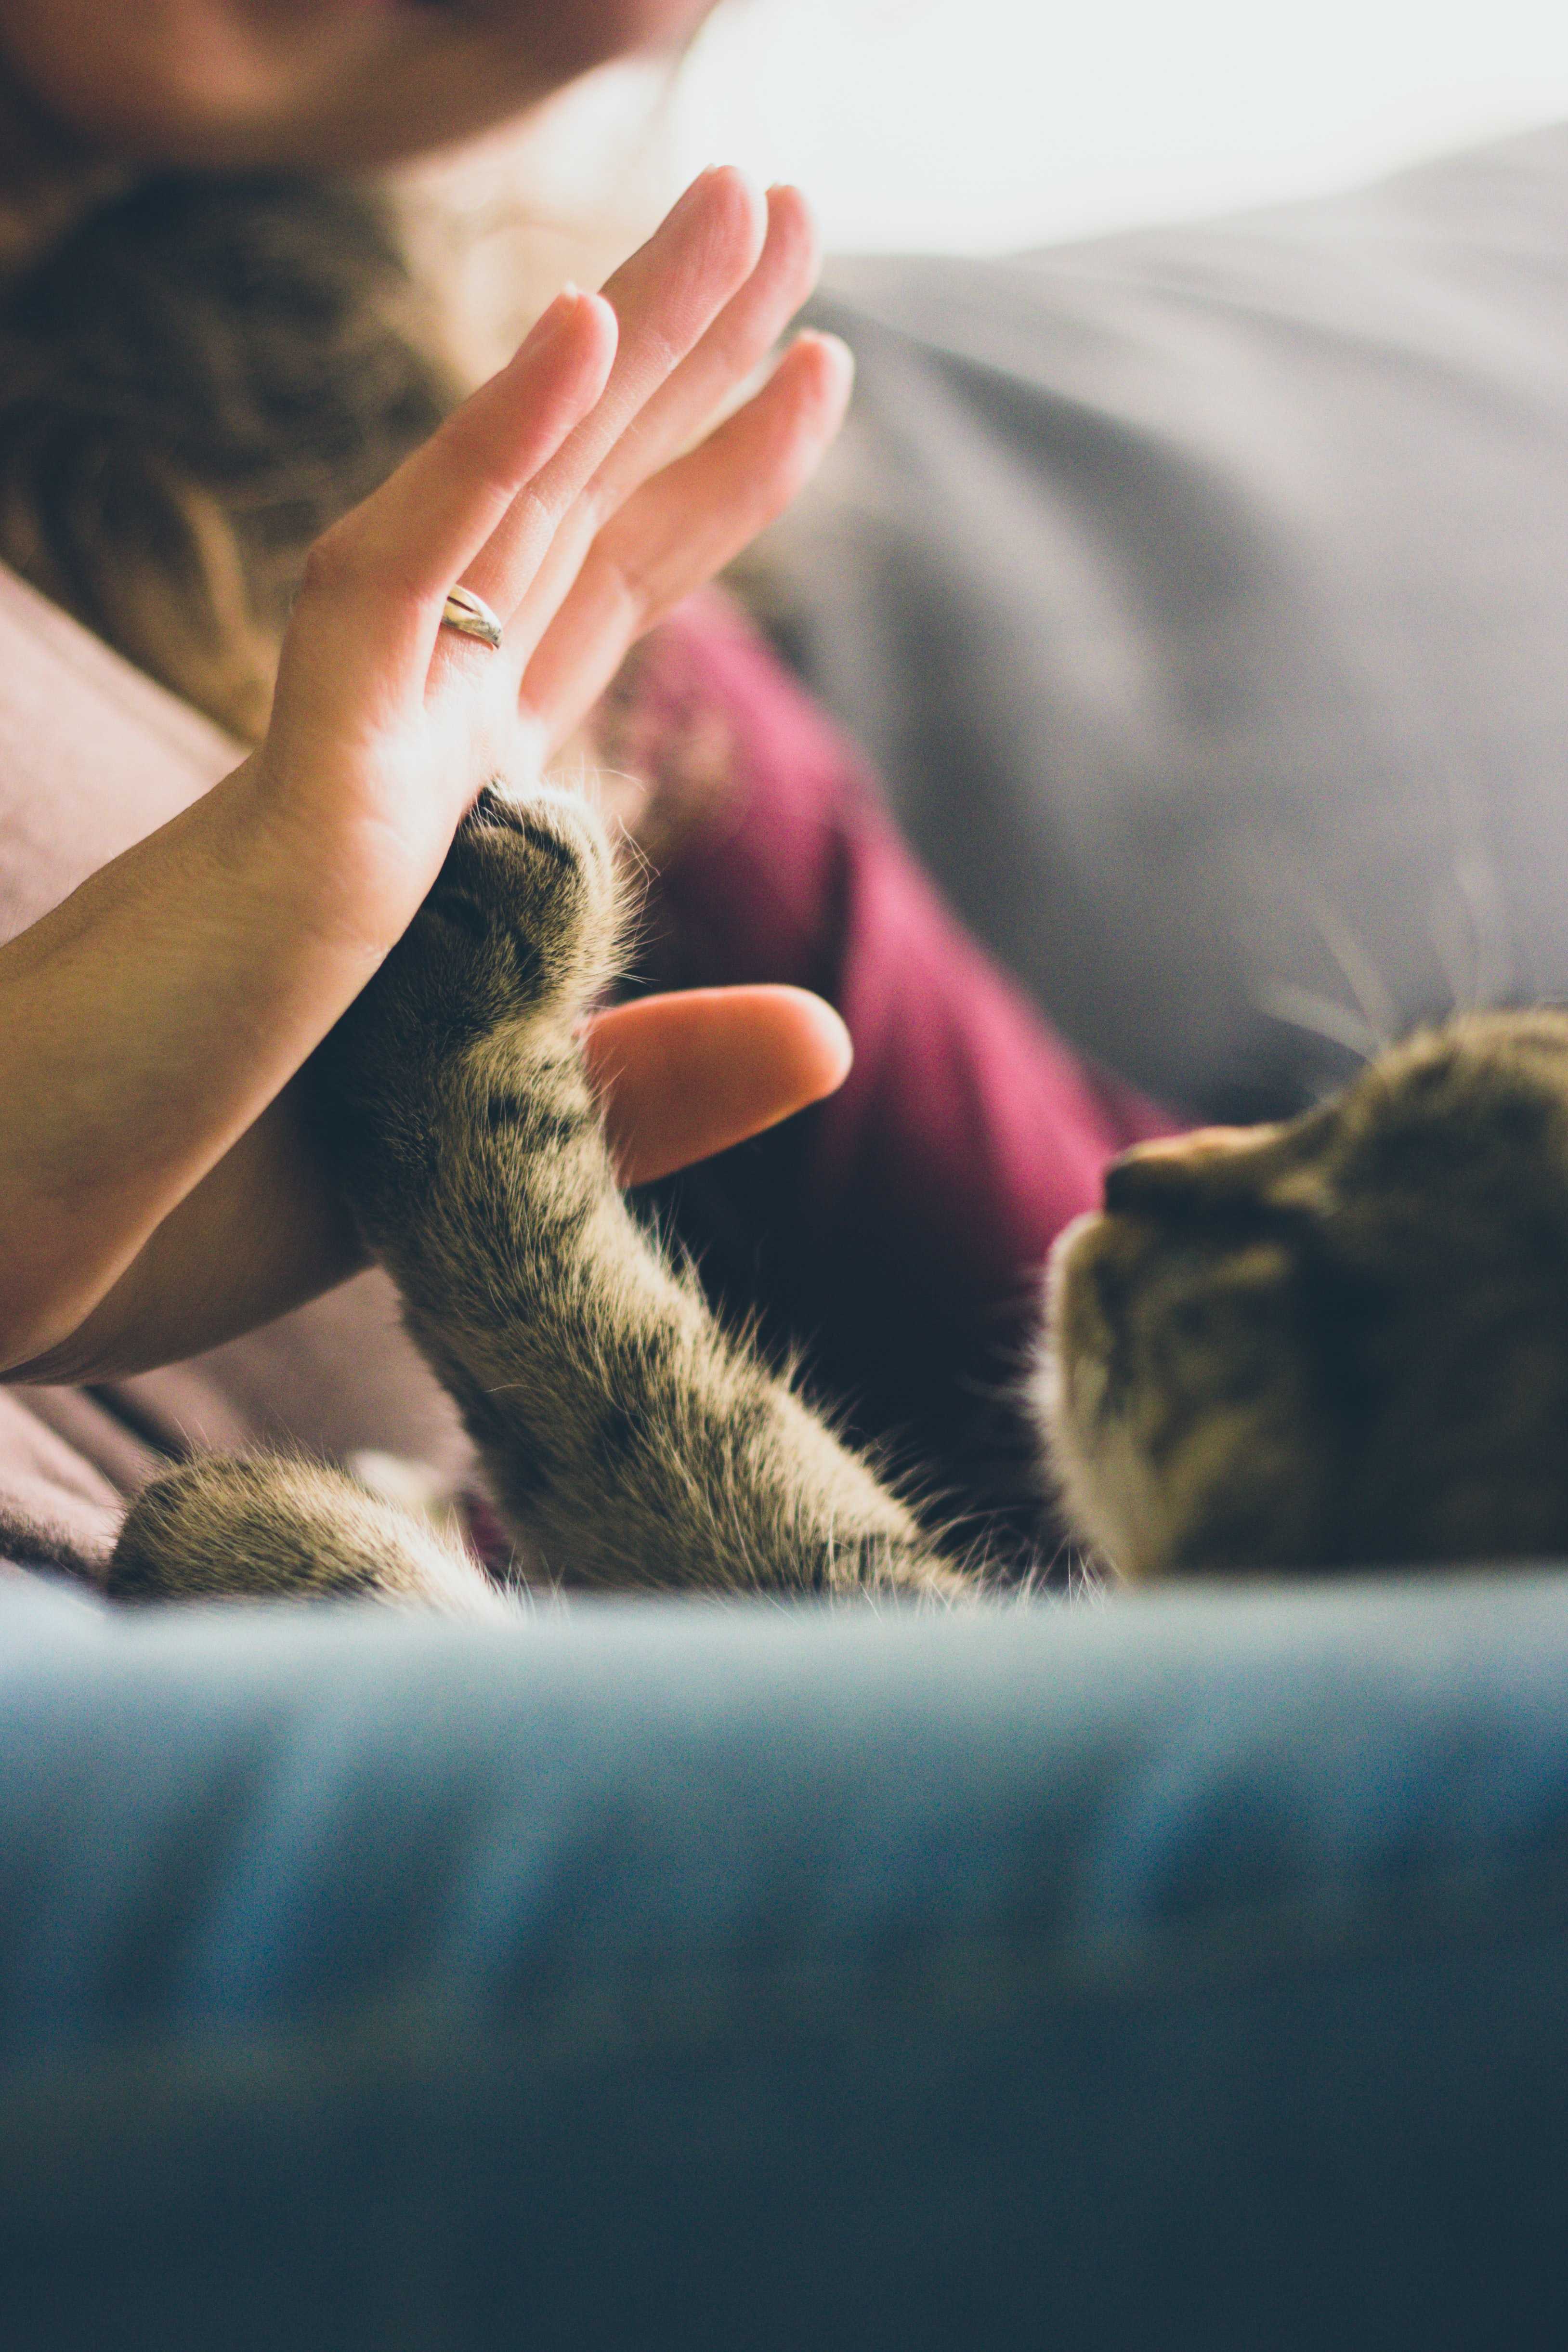 Cat reaches up its paw to high five a woman